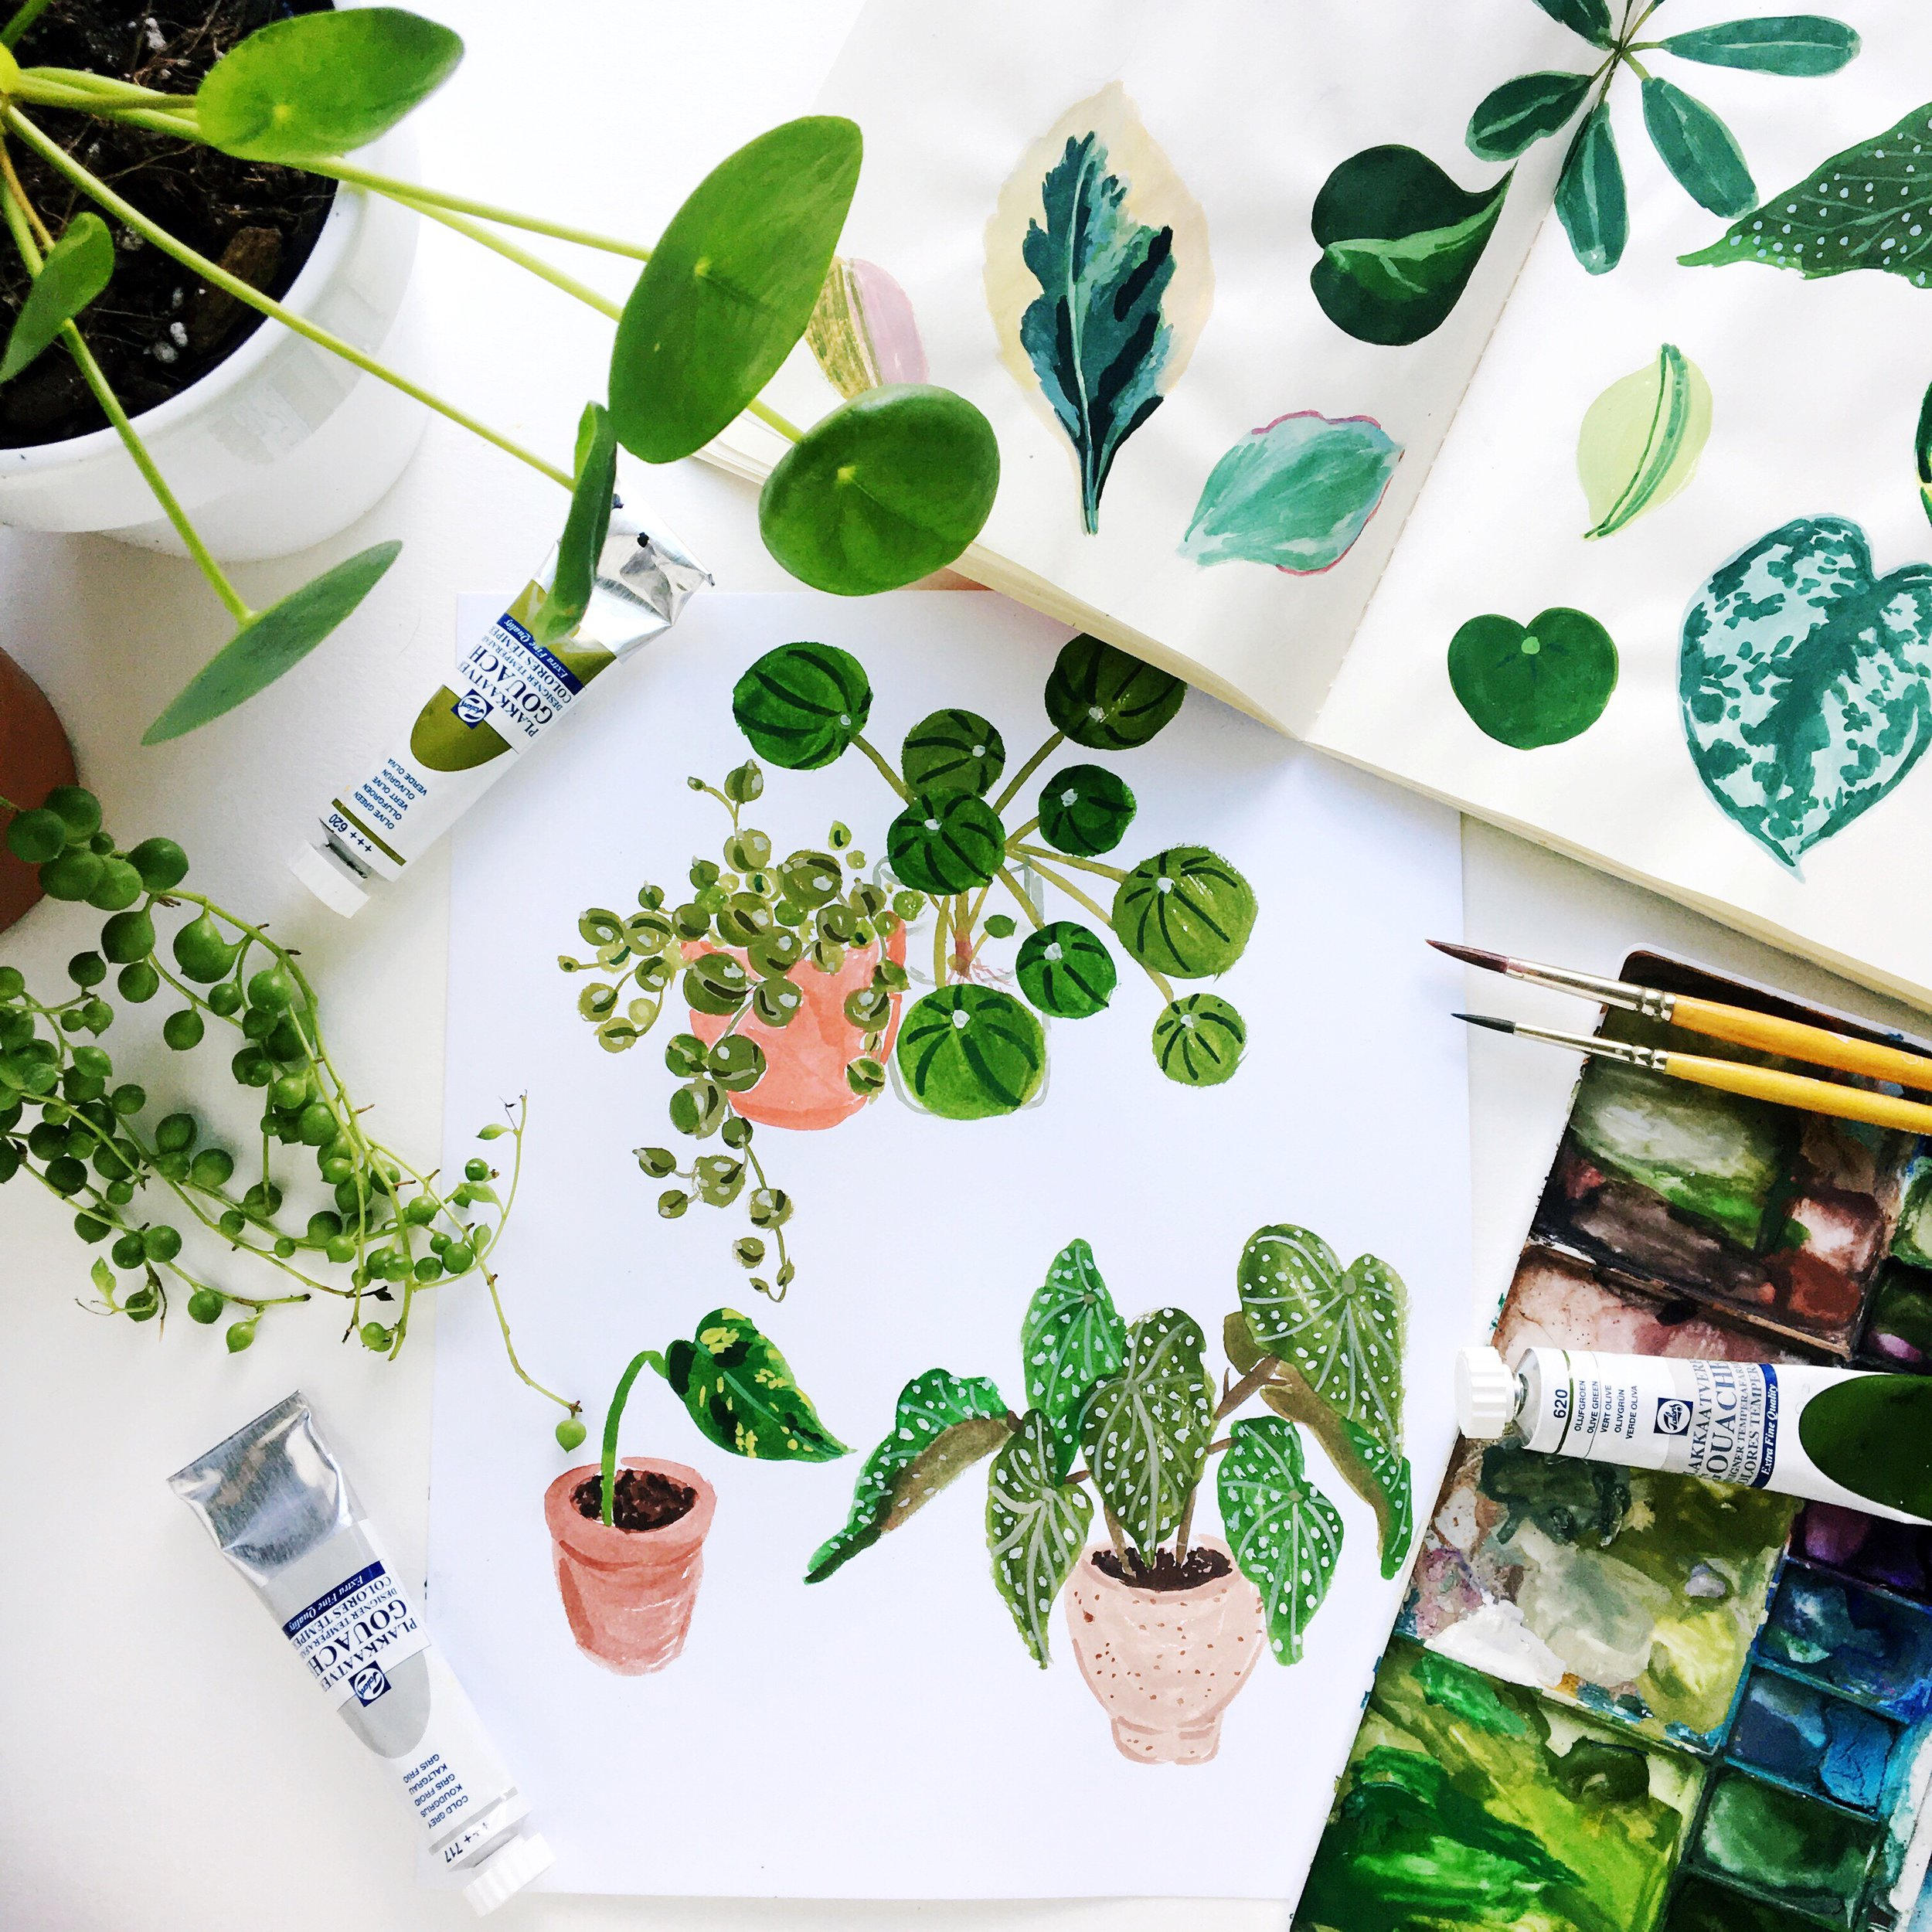 papercraftpantry-workshops-intro-to-gouache-painting-plants.jpg